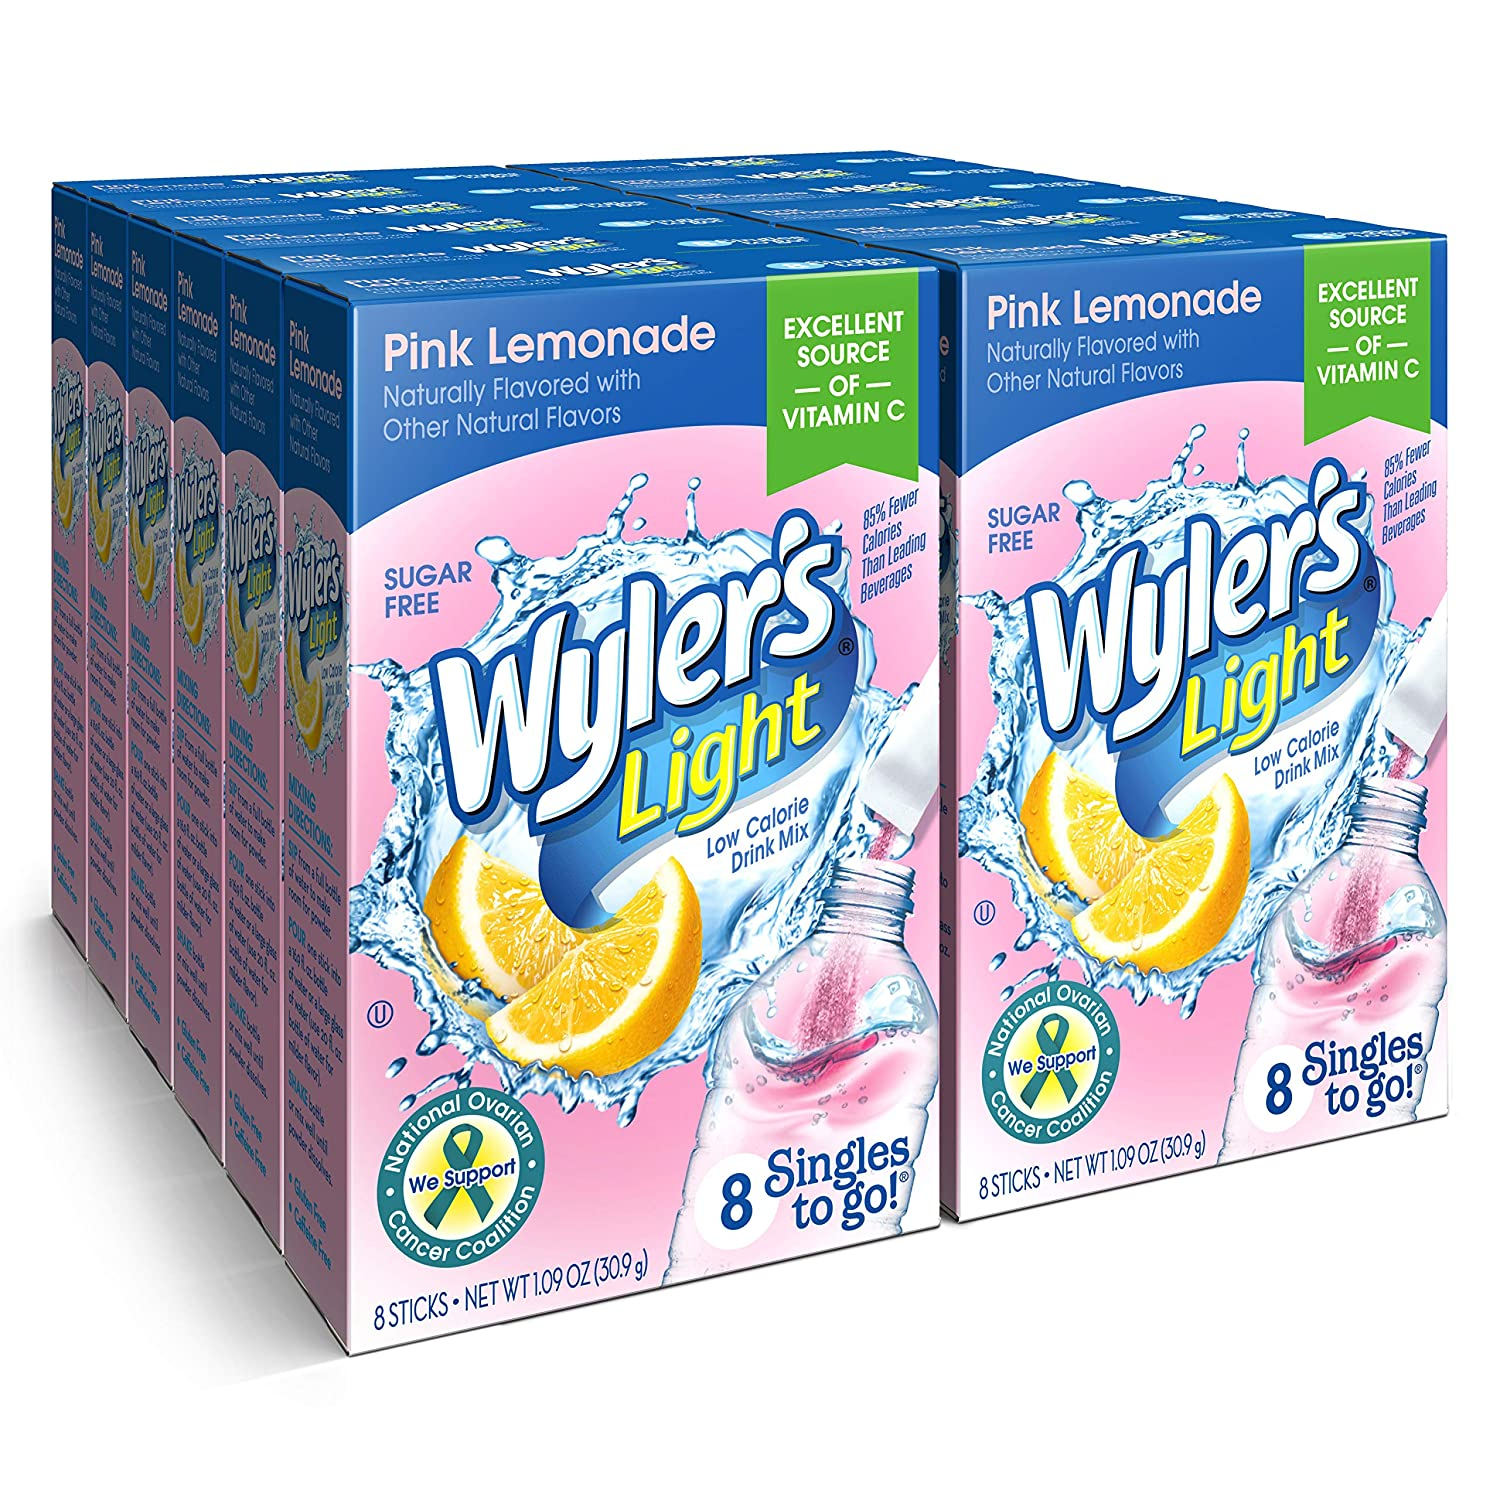 Wyler's Popular shop gift is the lowest price challenge Light Singles To Go Powder Packets Pin Mix Drink Water